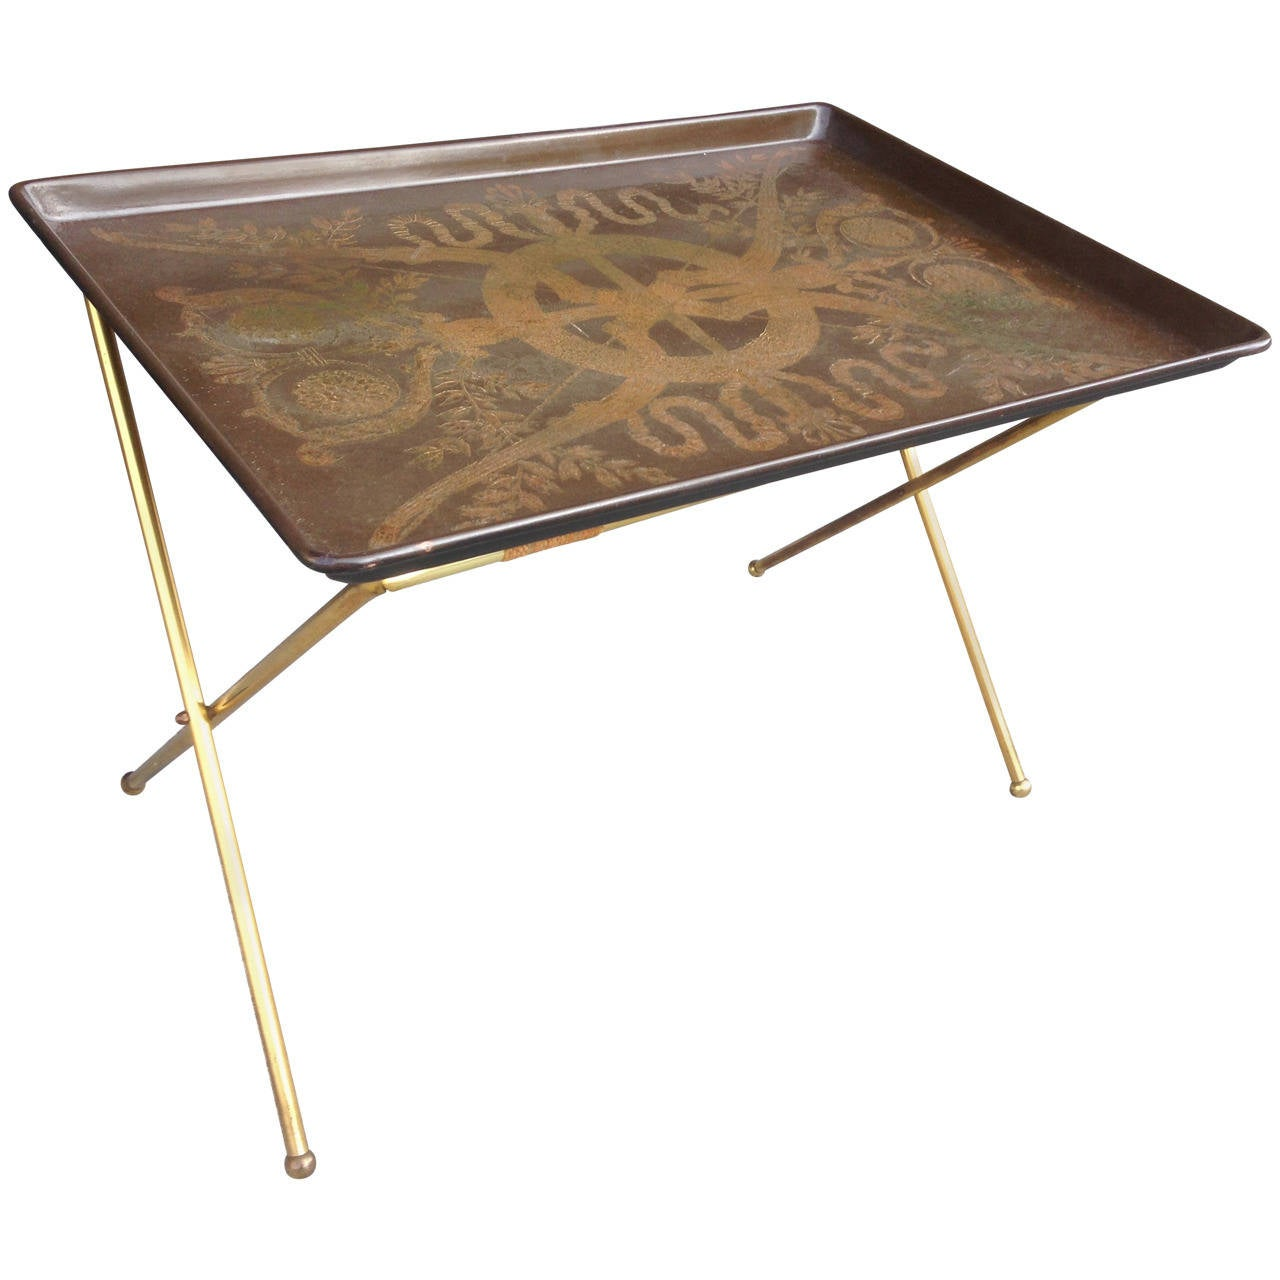 fornasetti tray table for sale at 1stdibs. Black Bedroom Furniture Sets. Home Design Ideas